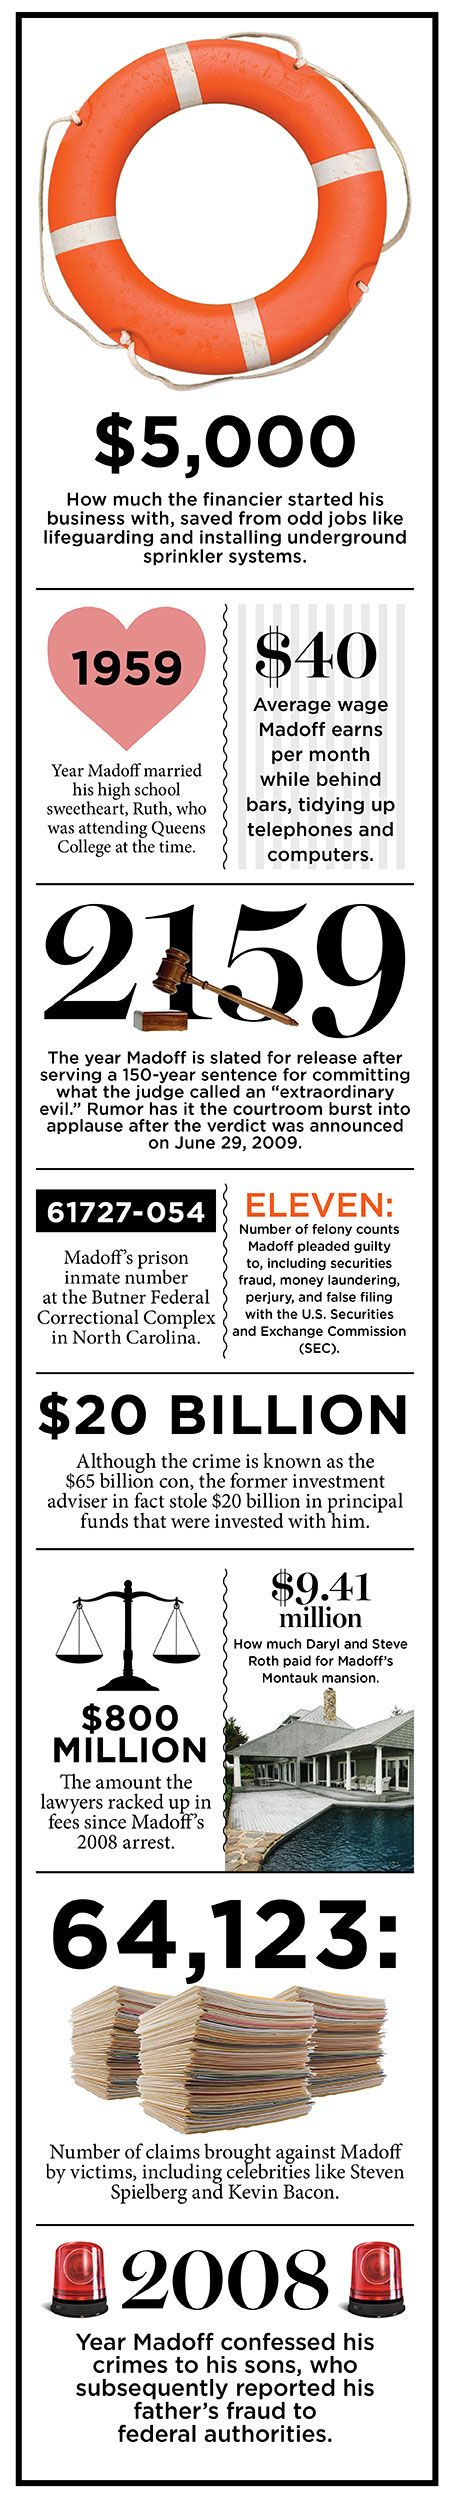 Bernie Madoff by the numbers.